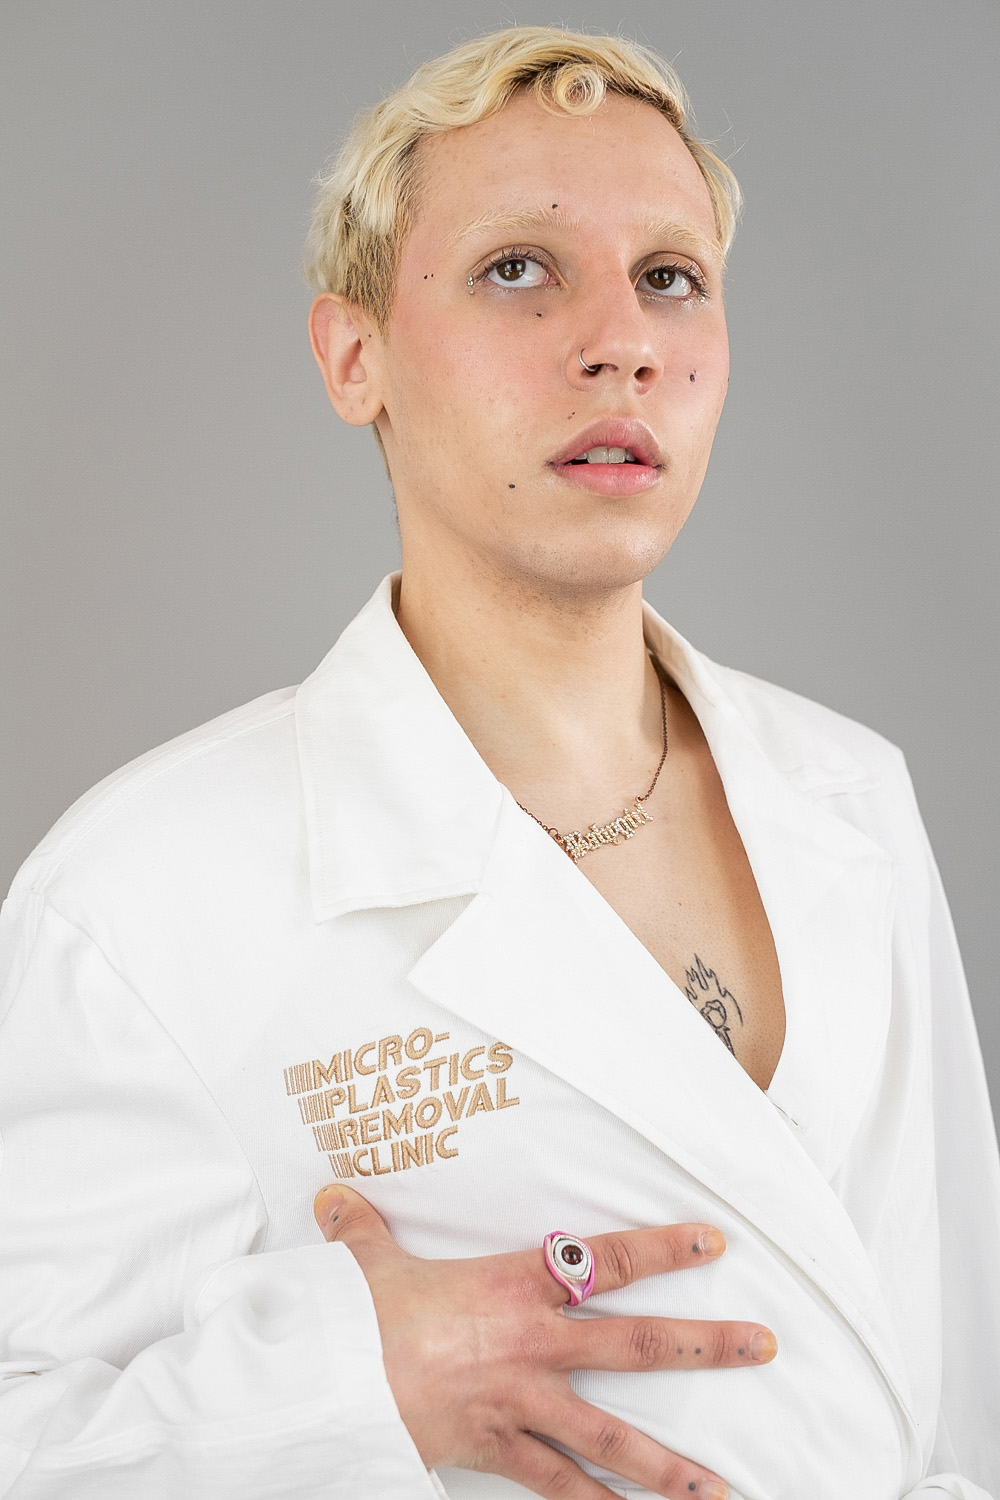 Removal Clinic Jacket 4